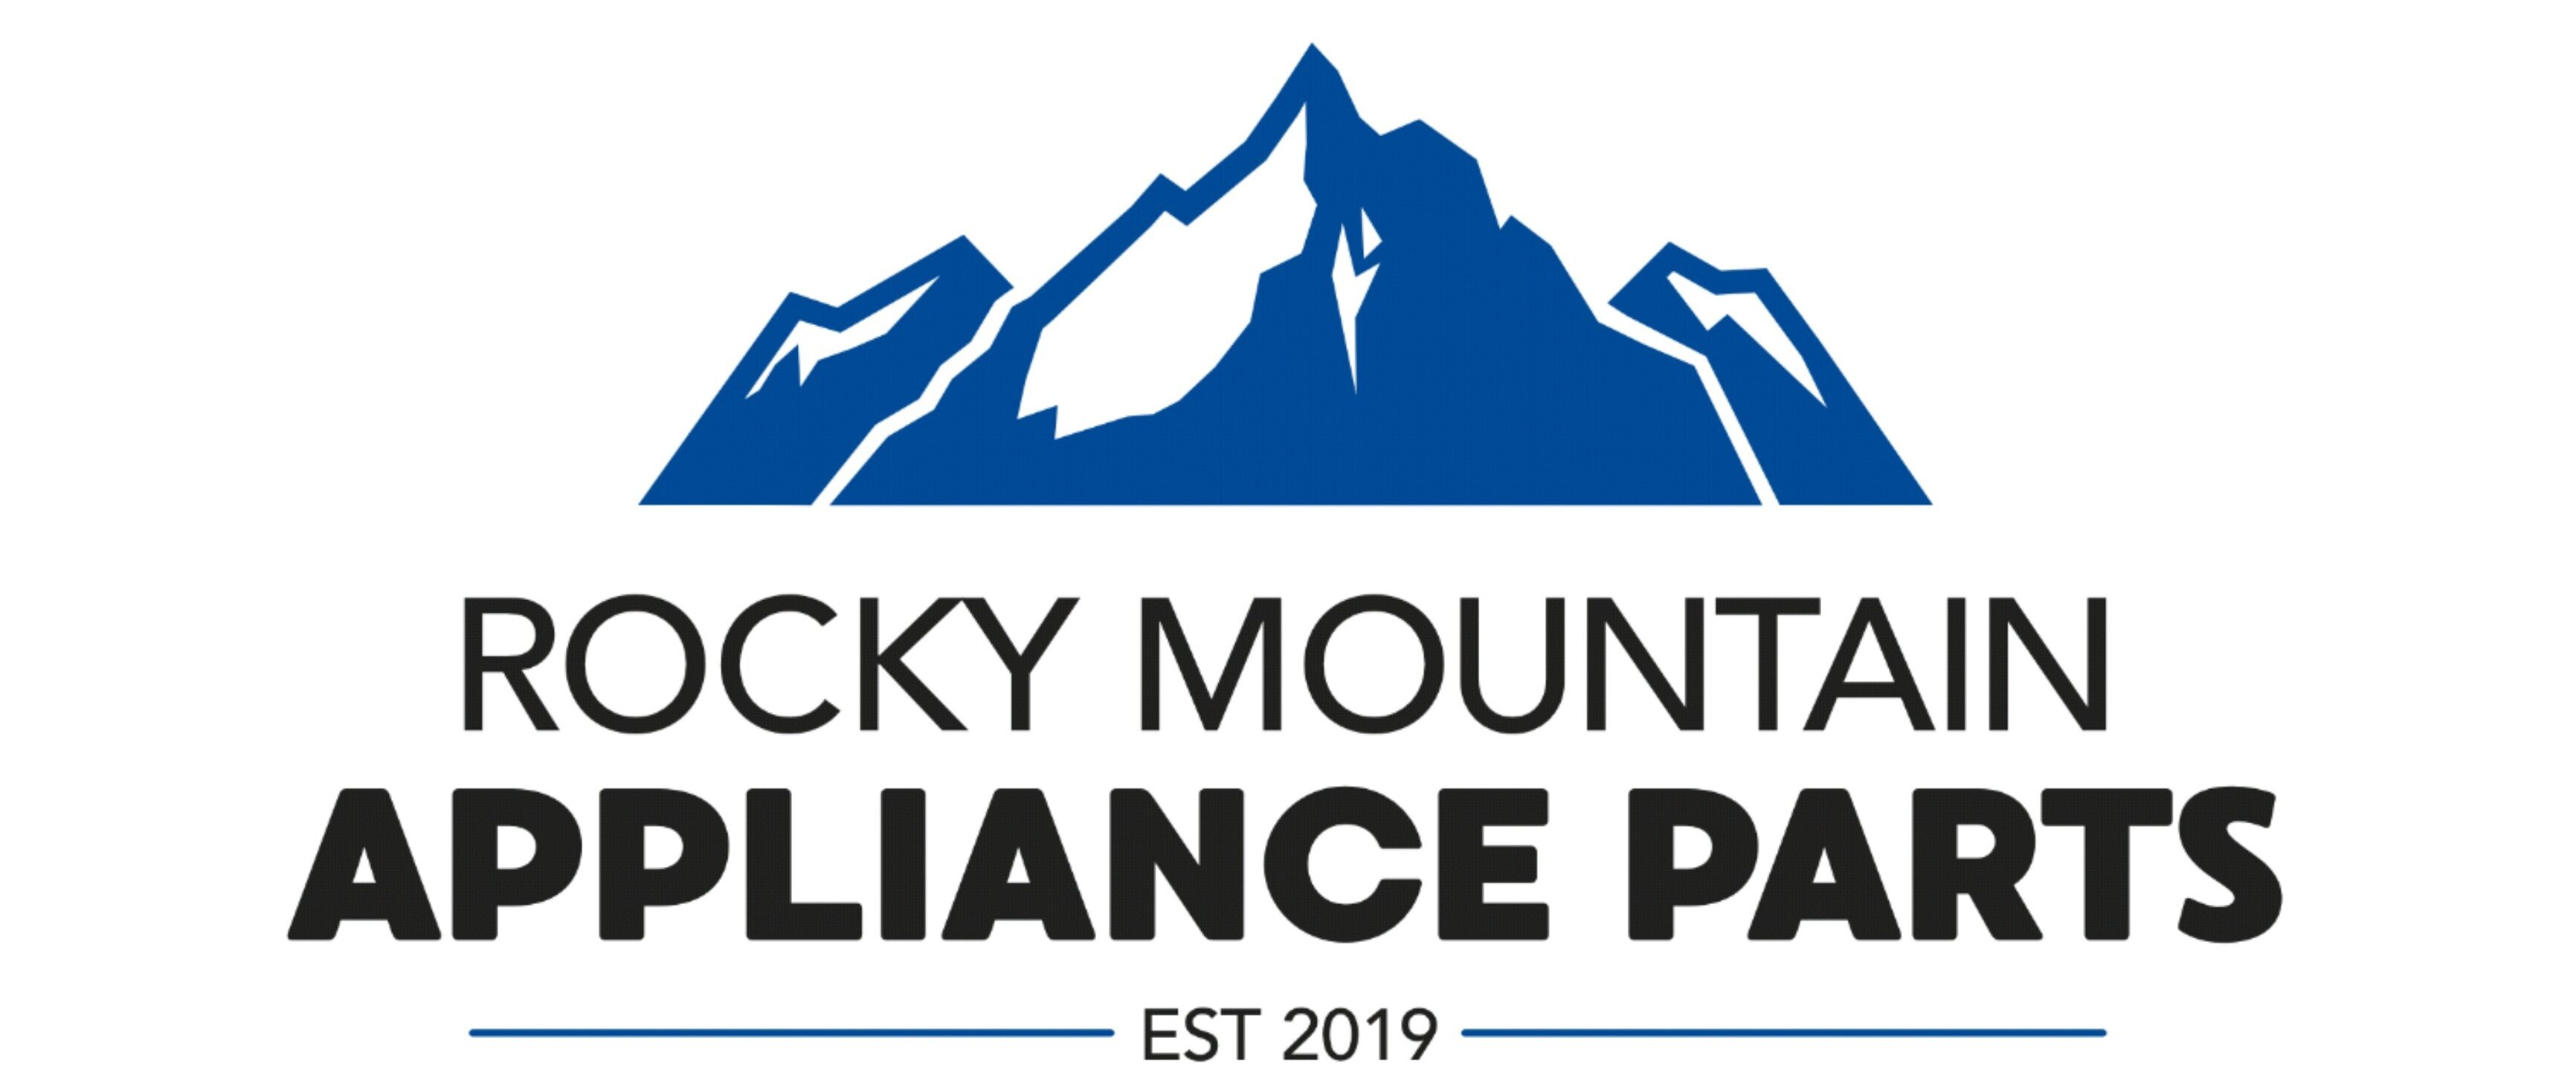 ROCKY MOUNTAIN APPLIANCE PARTS LLC